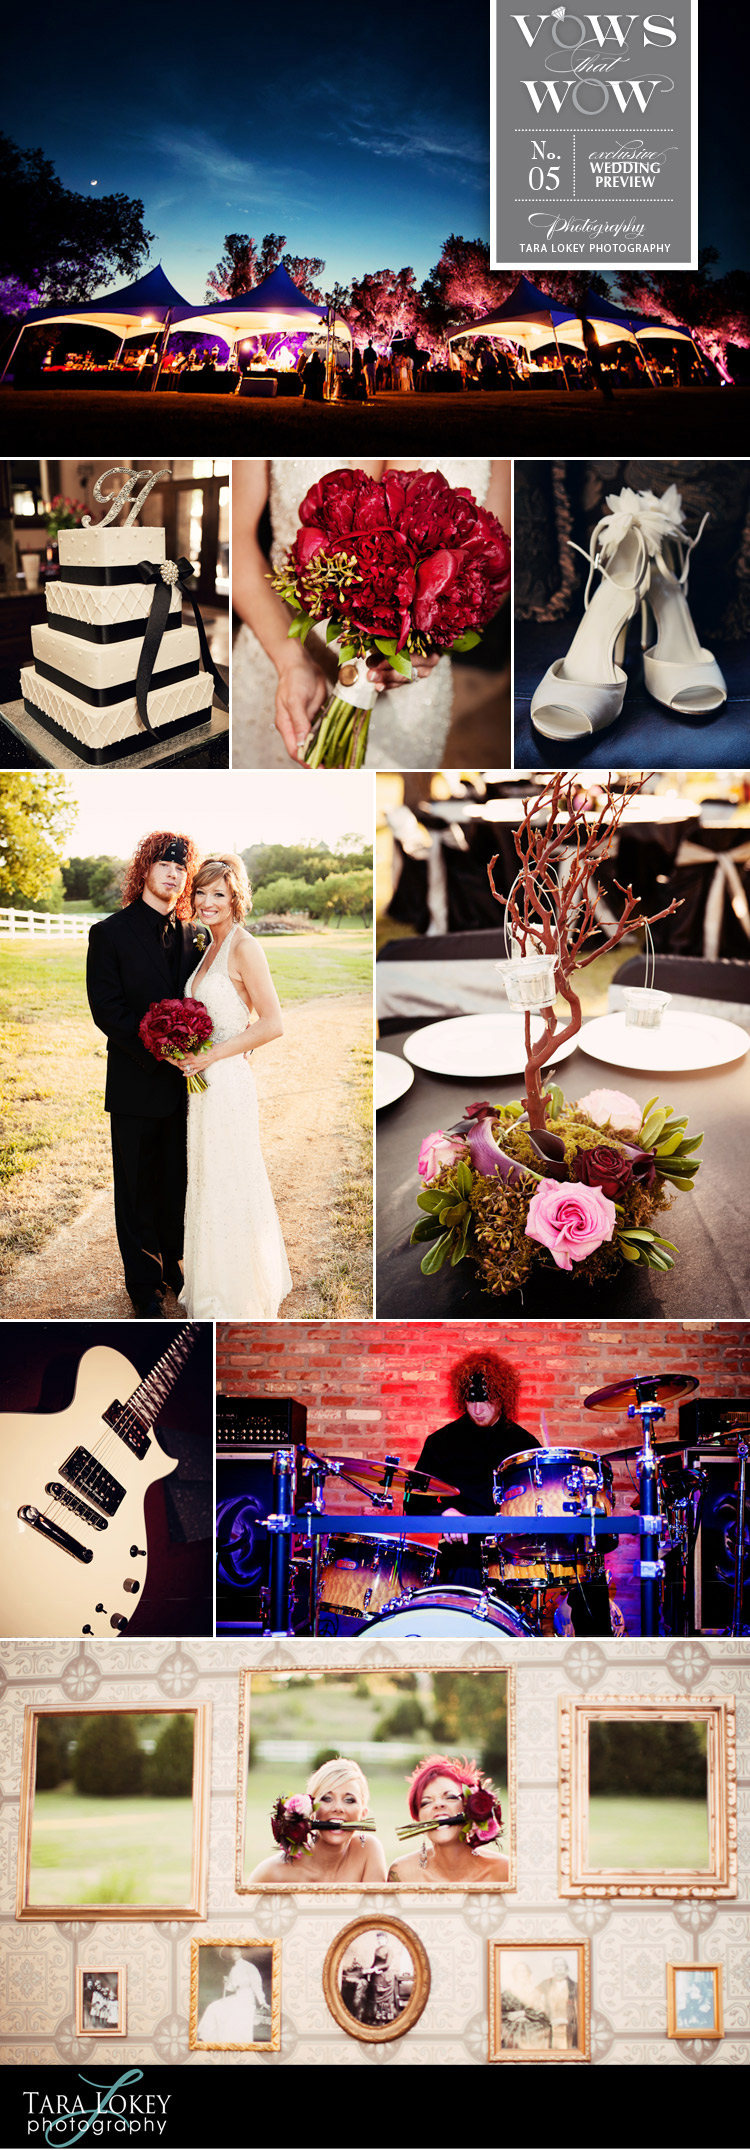 Brides of Oklahoma vows that wow Tara Lokey Photography